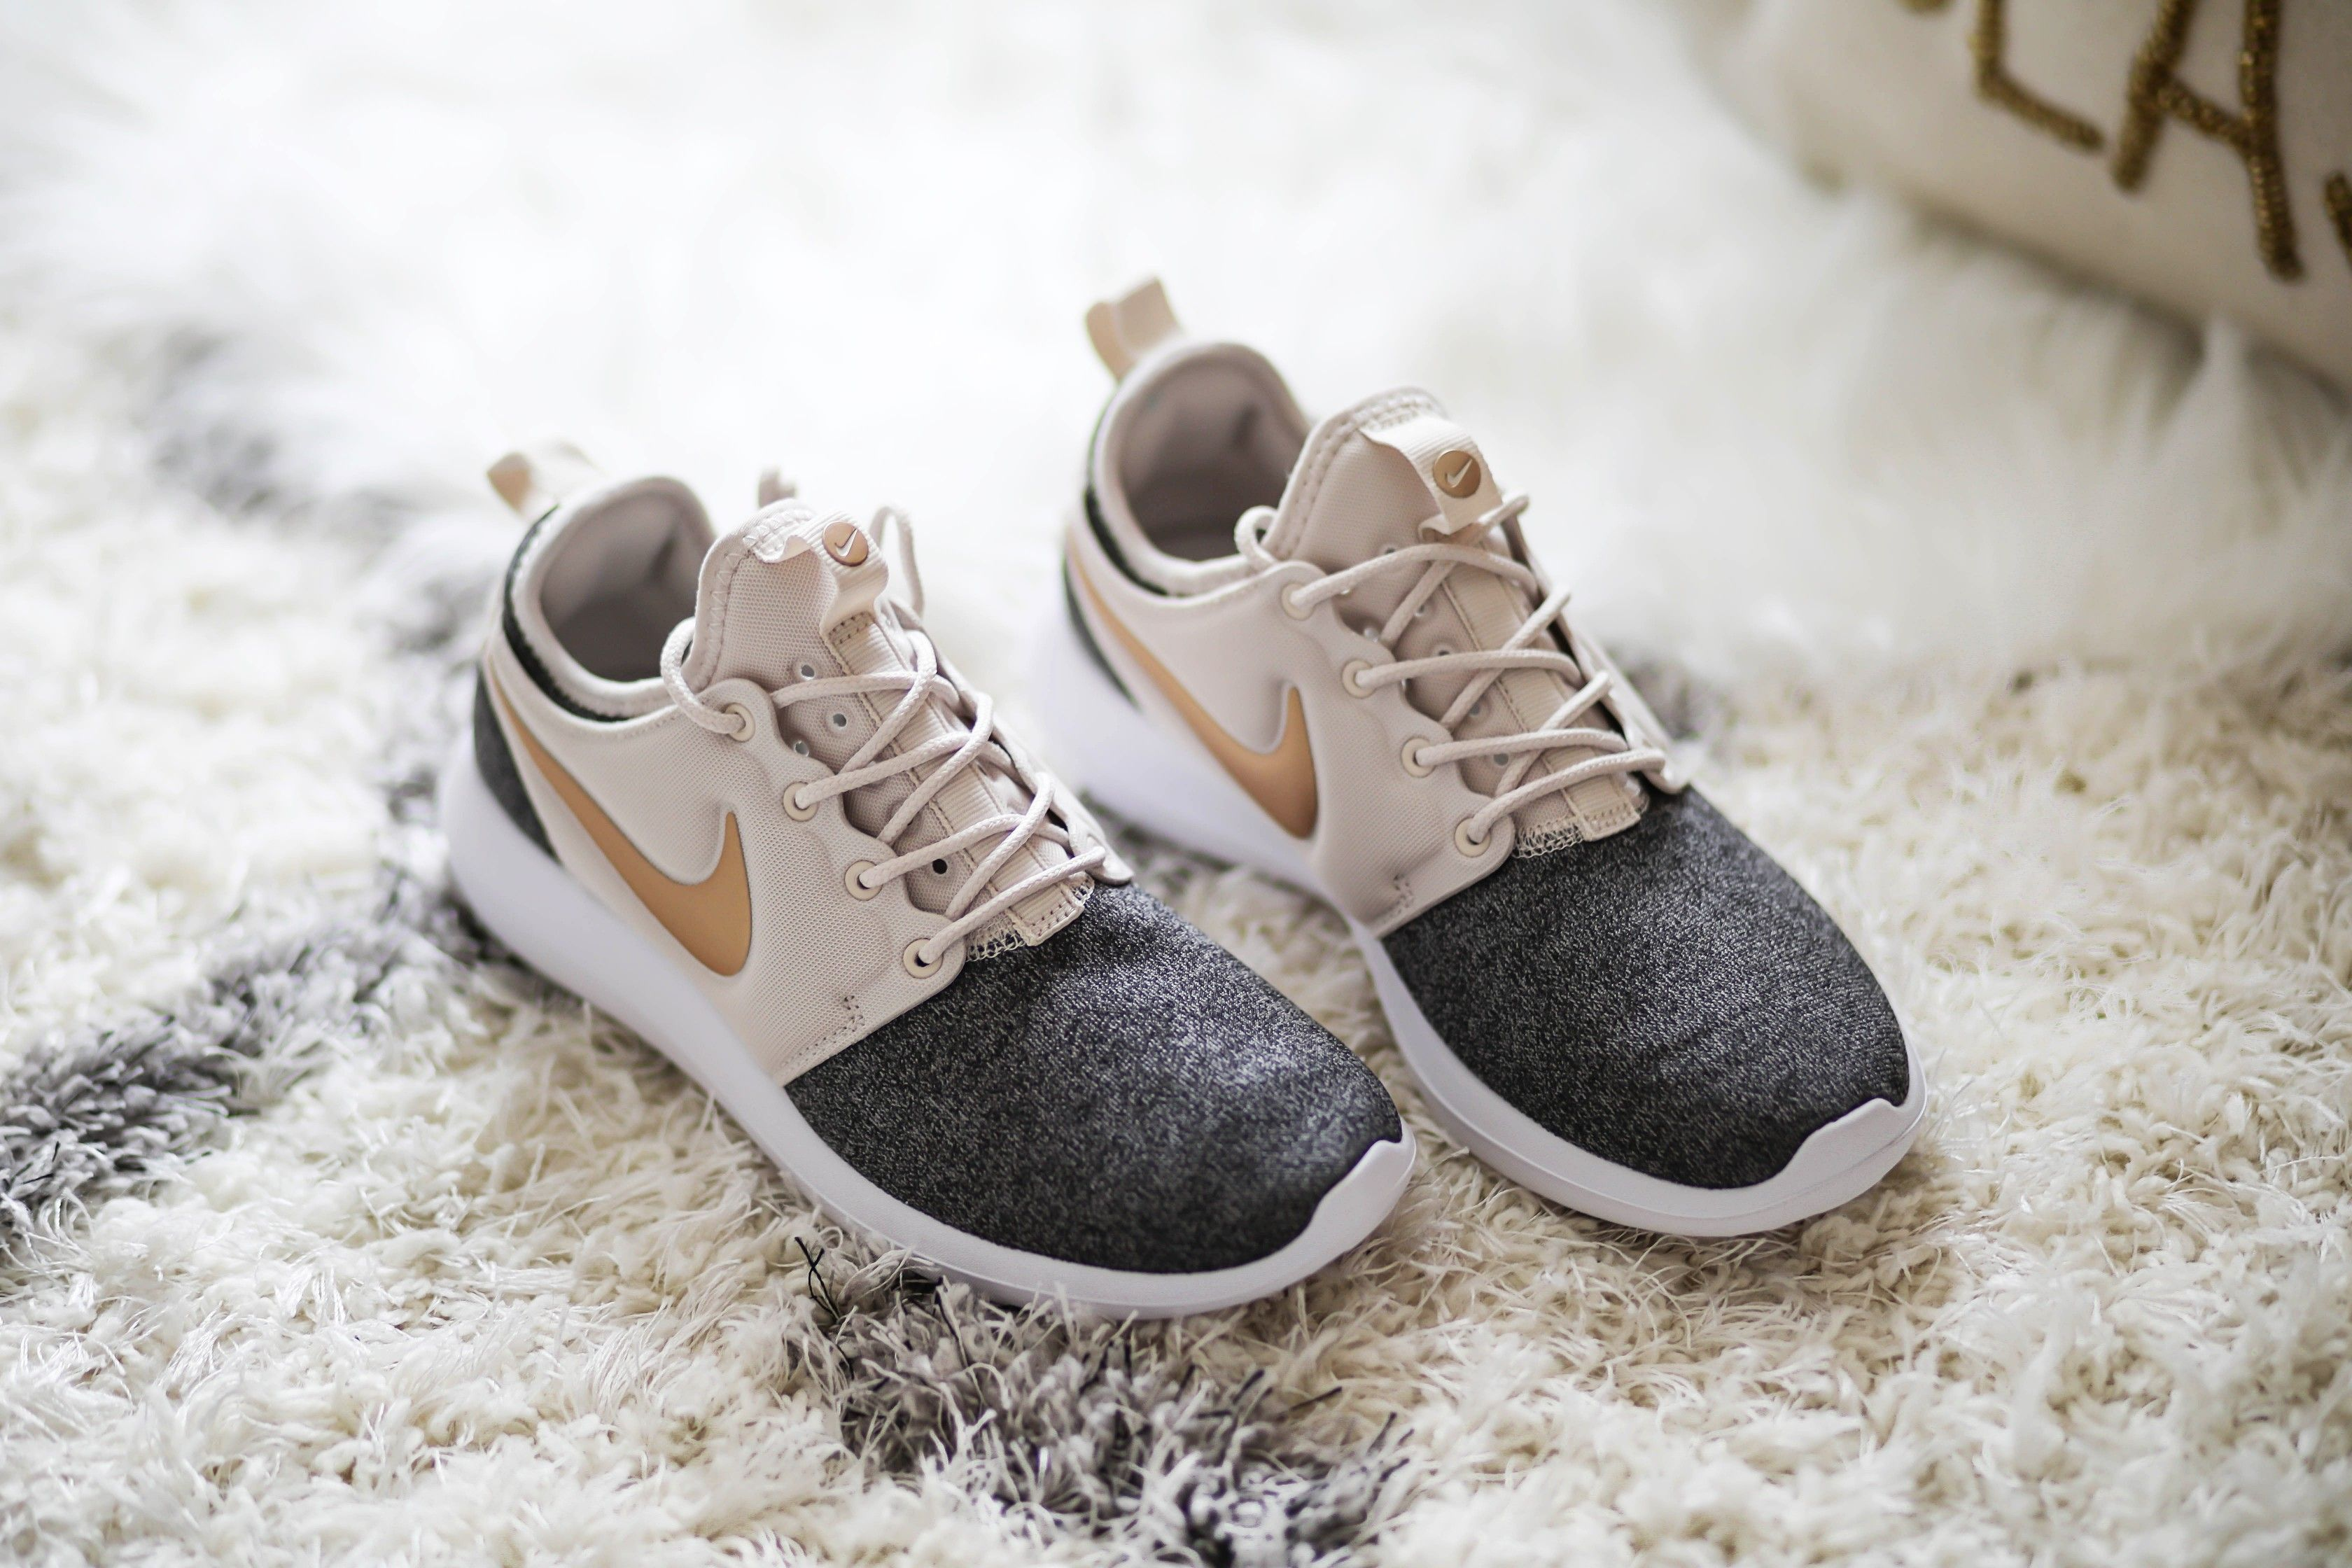 77b8d5a56919 Women s Nike Roshe Two Knit Casual Shoes WHAT I GOT FOR CHRISTMAS 2017